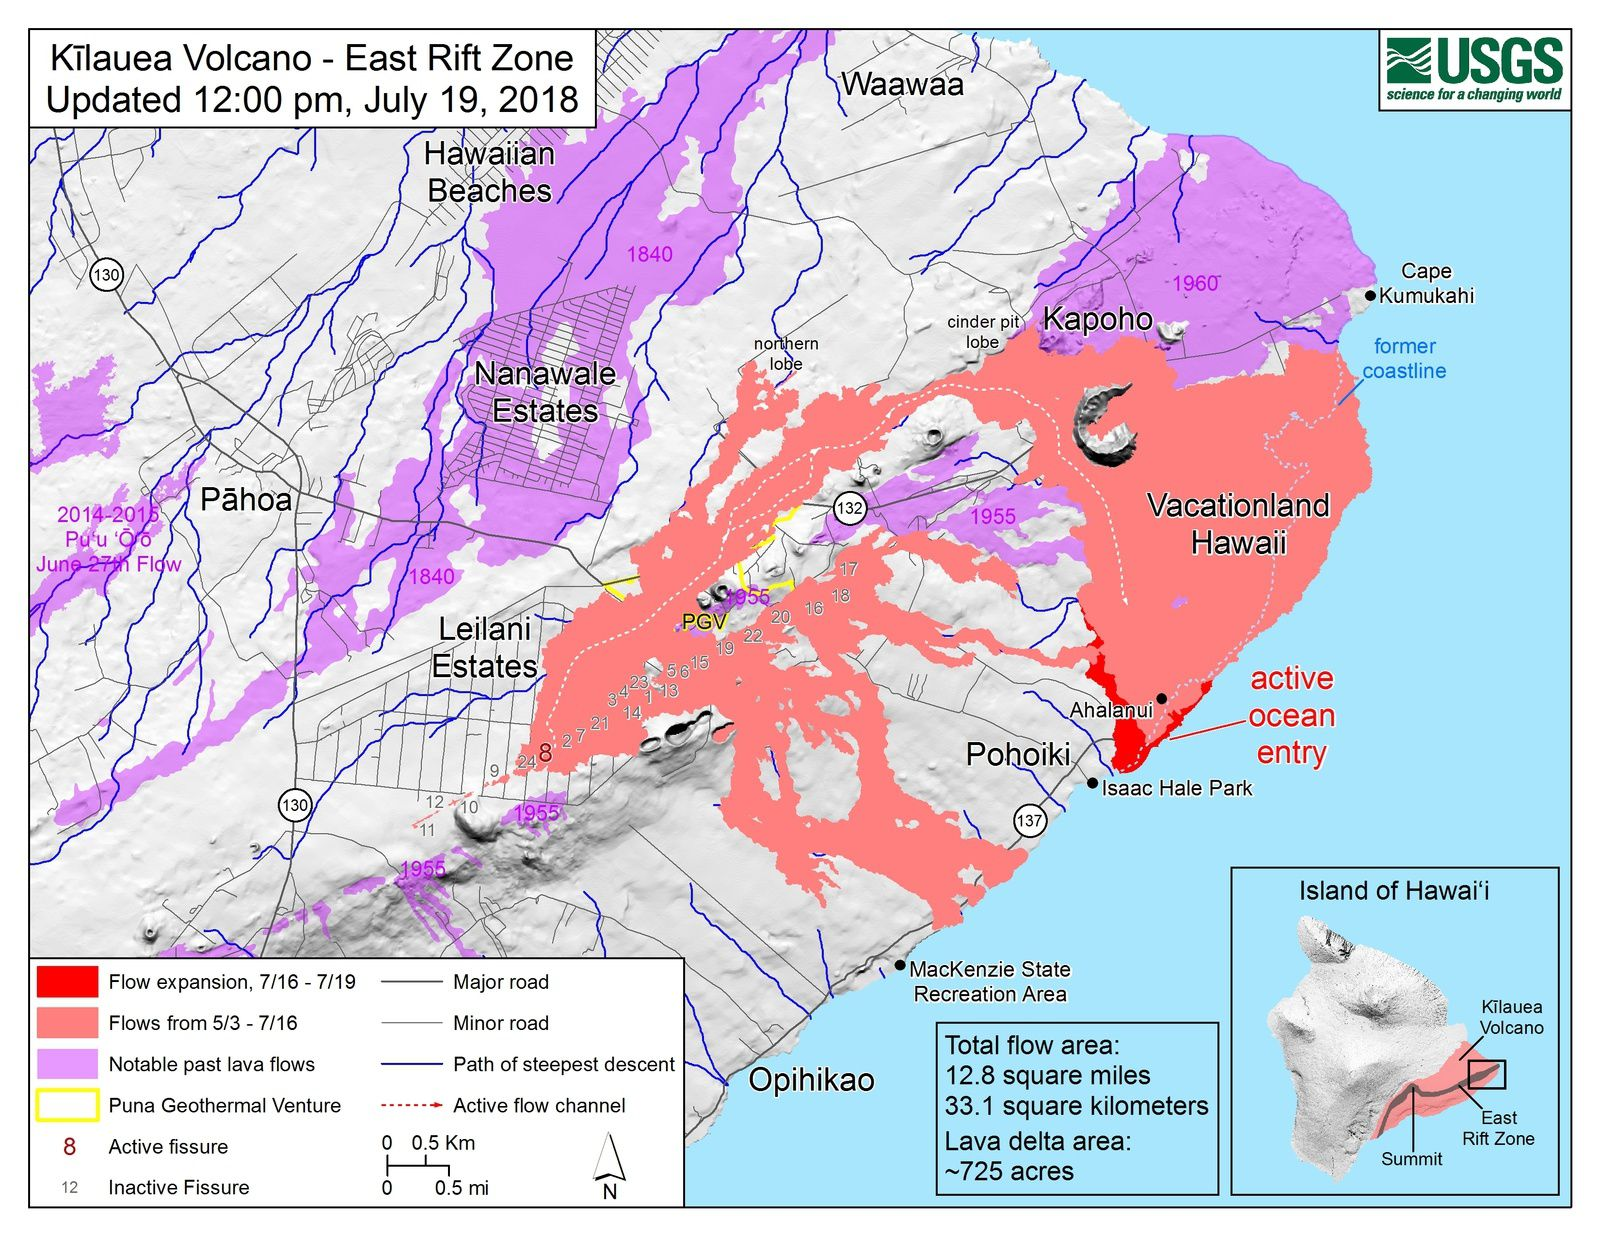 Kilauea East rift zone - map of the flow of the fissure 8 and entries at sea - Doc.HVO-USGS 19.07.2018 / 12 pm